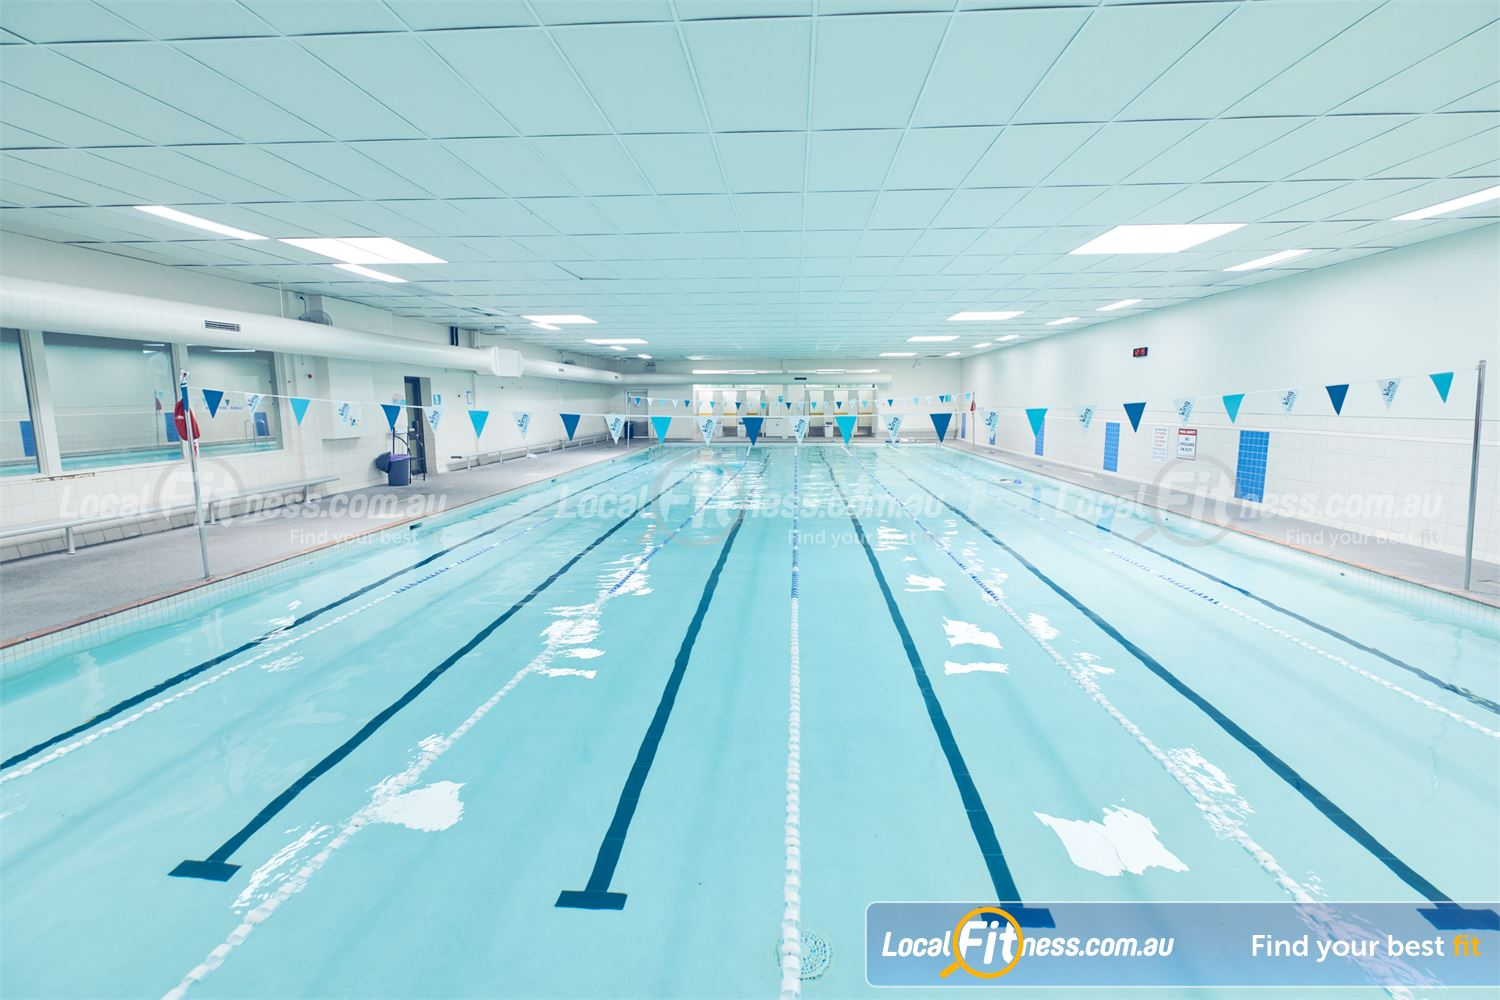 Goodlife Health Clubs Dingley Village Multi-lane indoor Dingley swimming pool perfect for lap lane swimming.